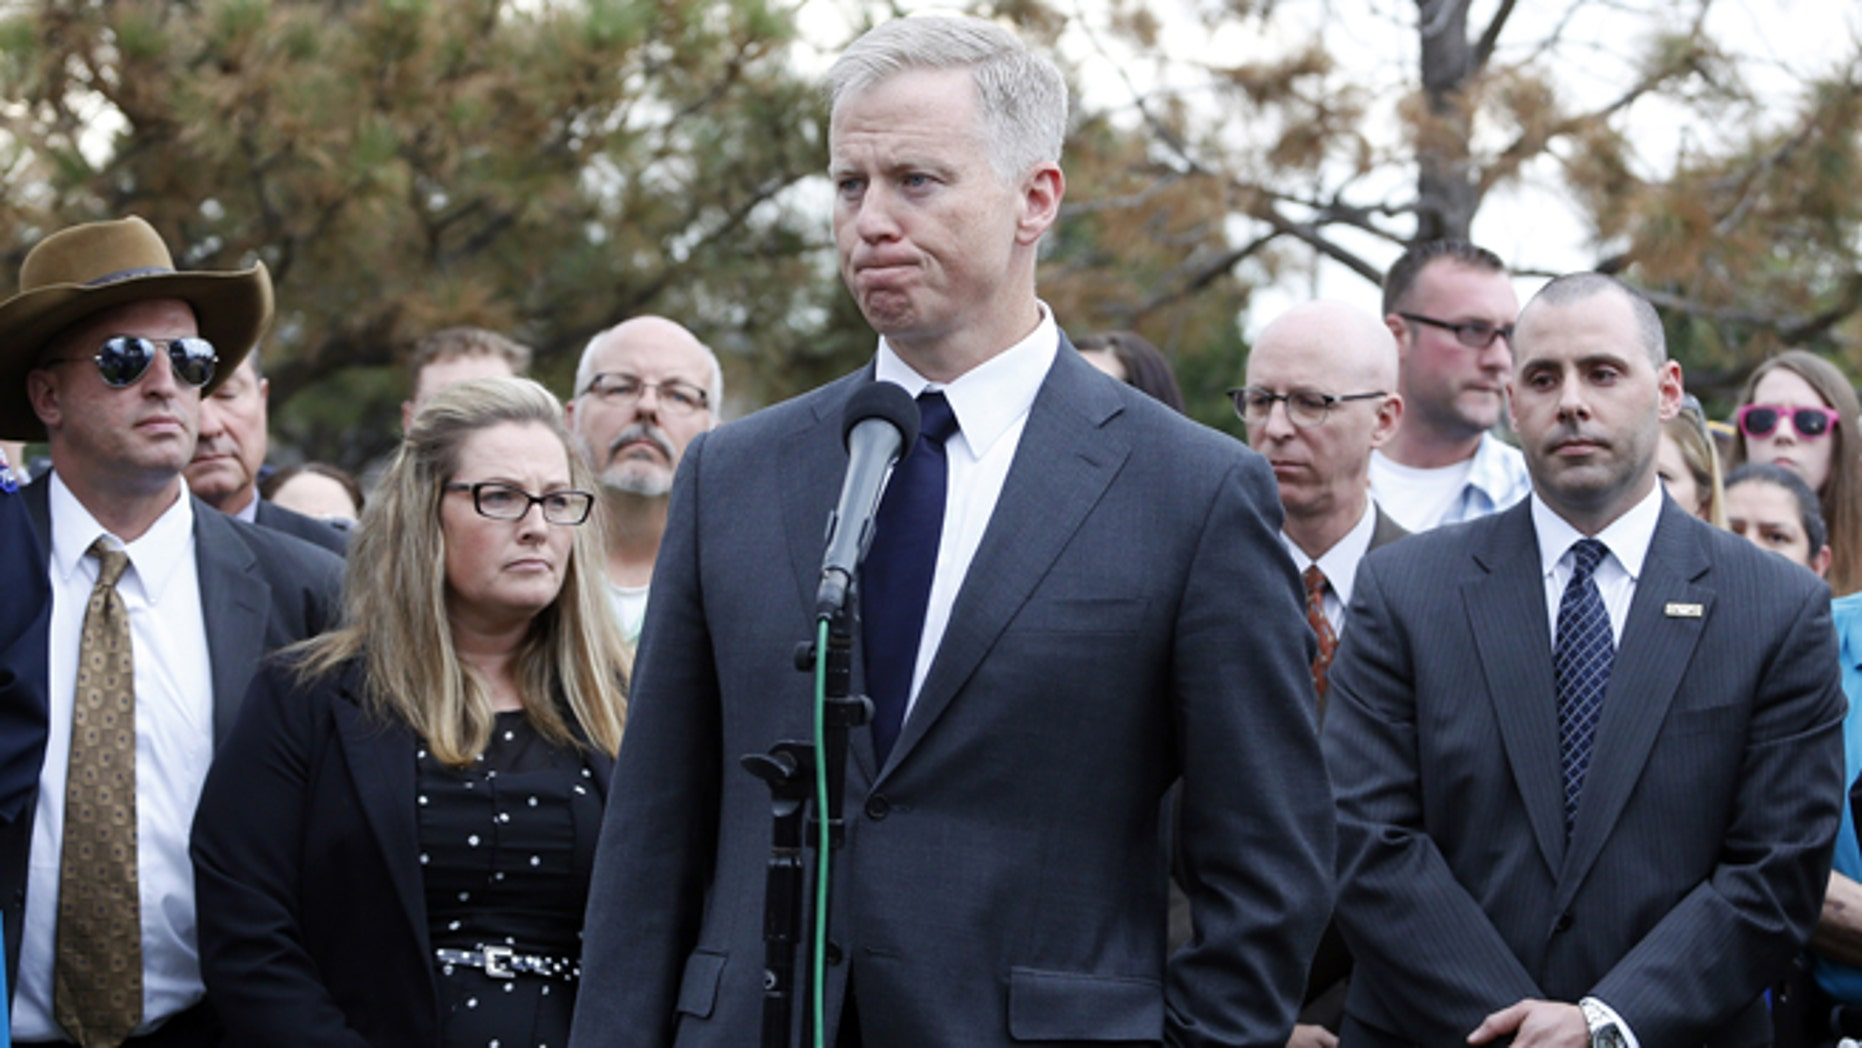 District Attorney George Brauchler speaks with members of the media following the reading of the jury's decision for Colorado theater shooter James Holmes, outside the Arapahoe County District Court. (AP Photo/Brennan Linsley)